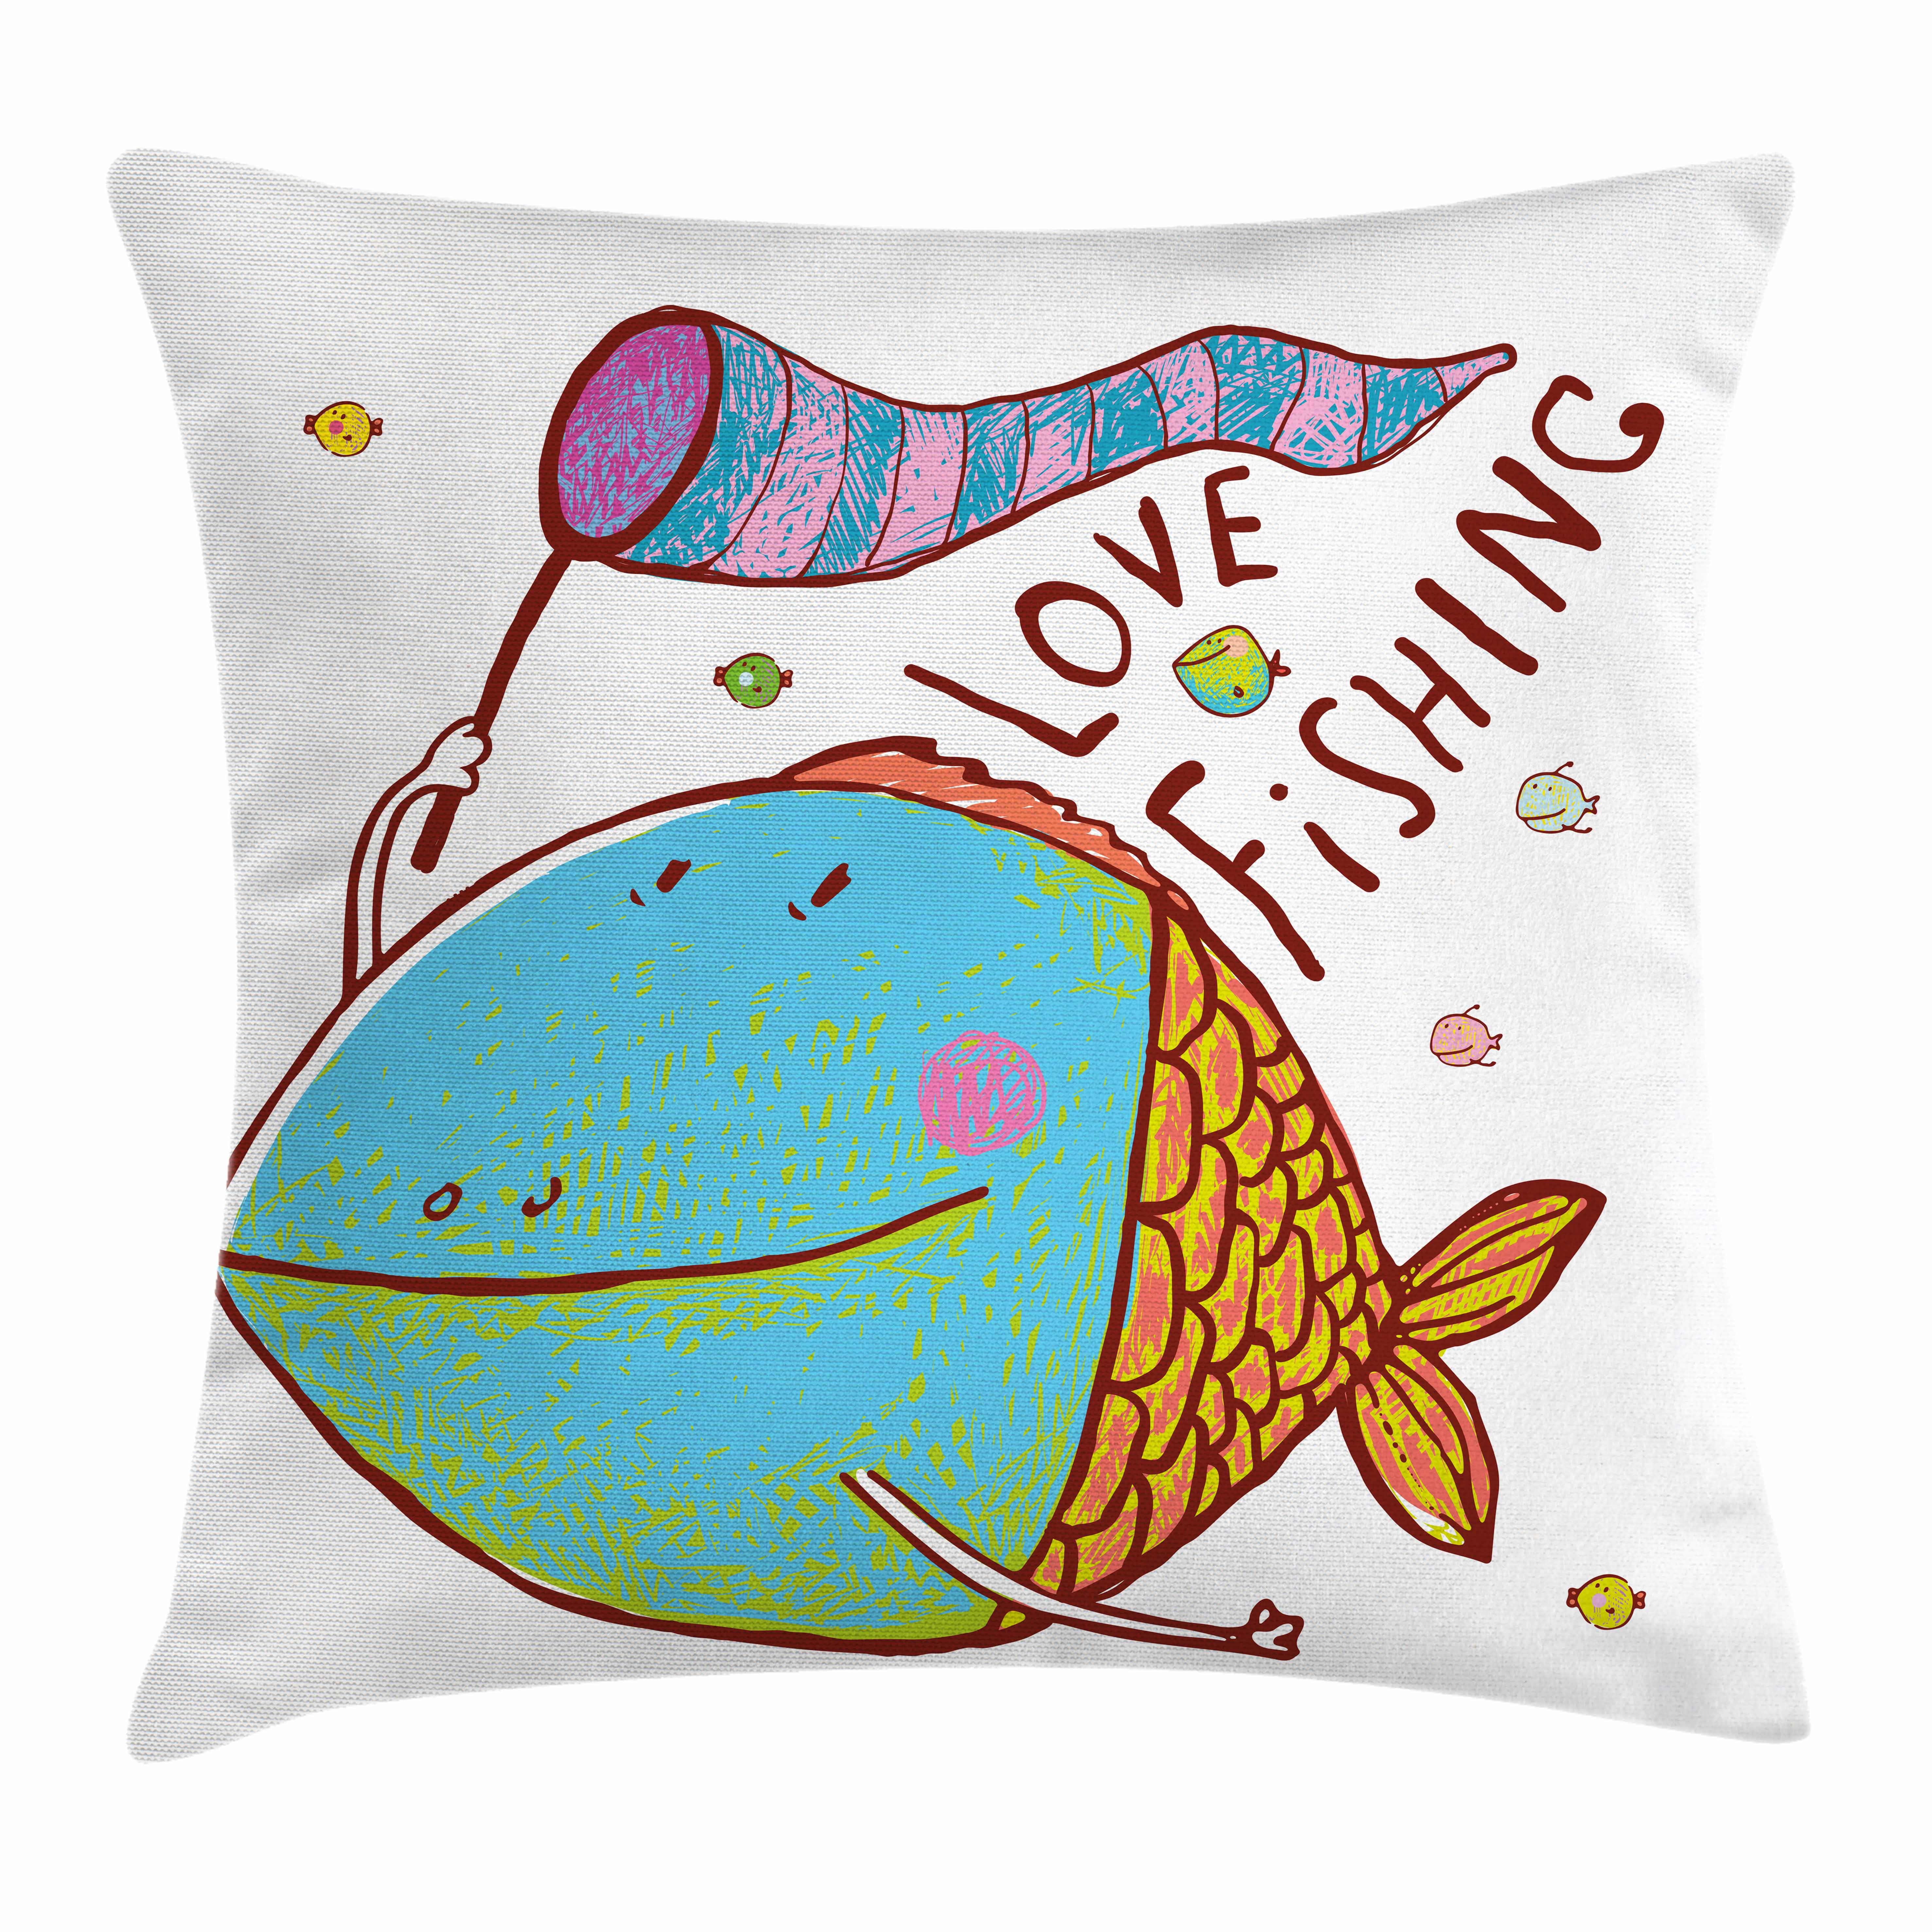 Fishing Decor Throw Pillow Cushion Cover, Kids Cute Large Fat Fish Holding a Flag with Love Quote Humor Fun Nursery Theme, Decorative Square Accent Pillow Case, 16 X 16 Inches, Multi, by Ambesonne